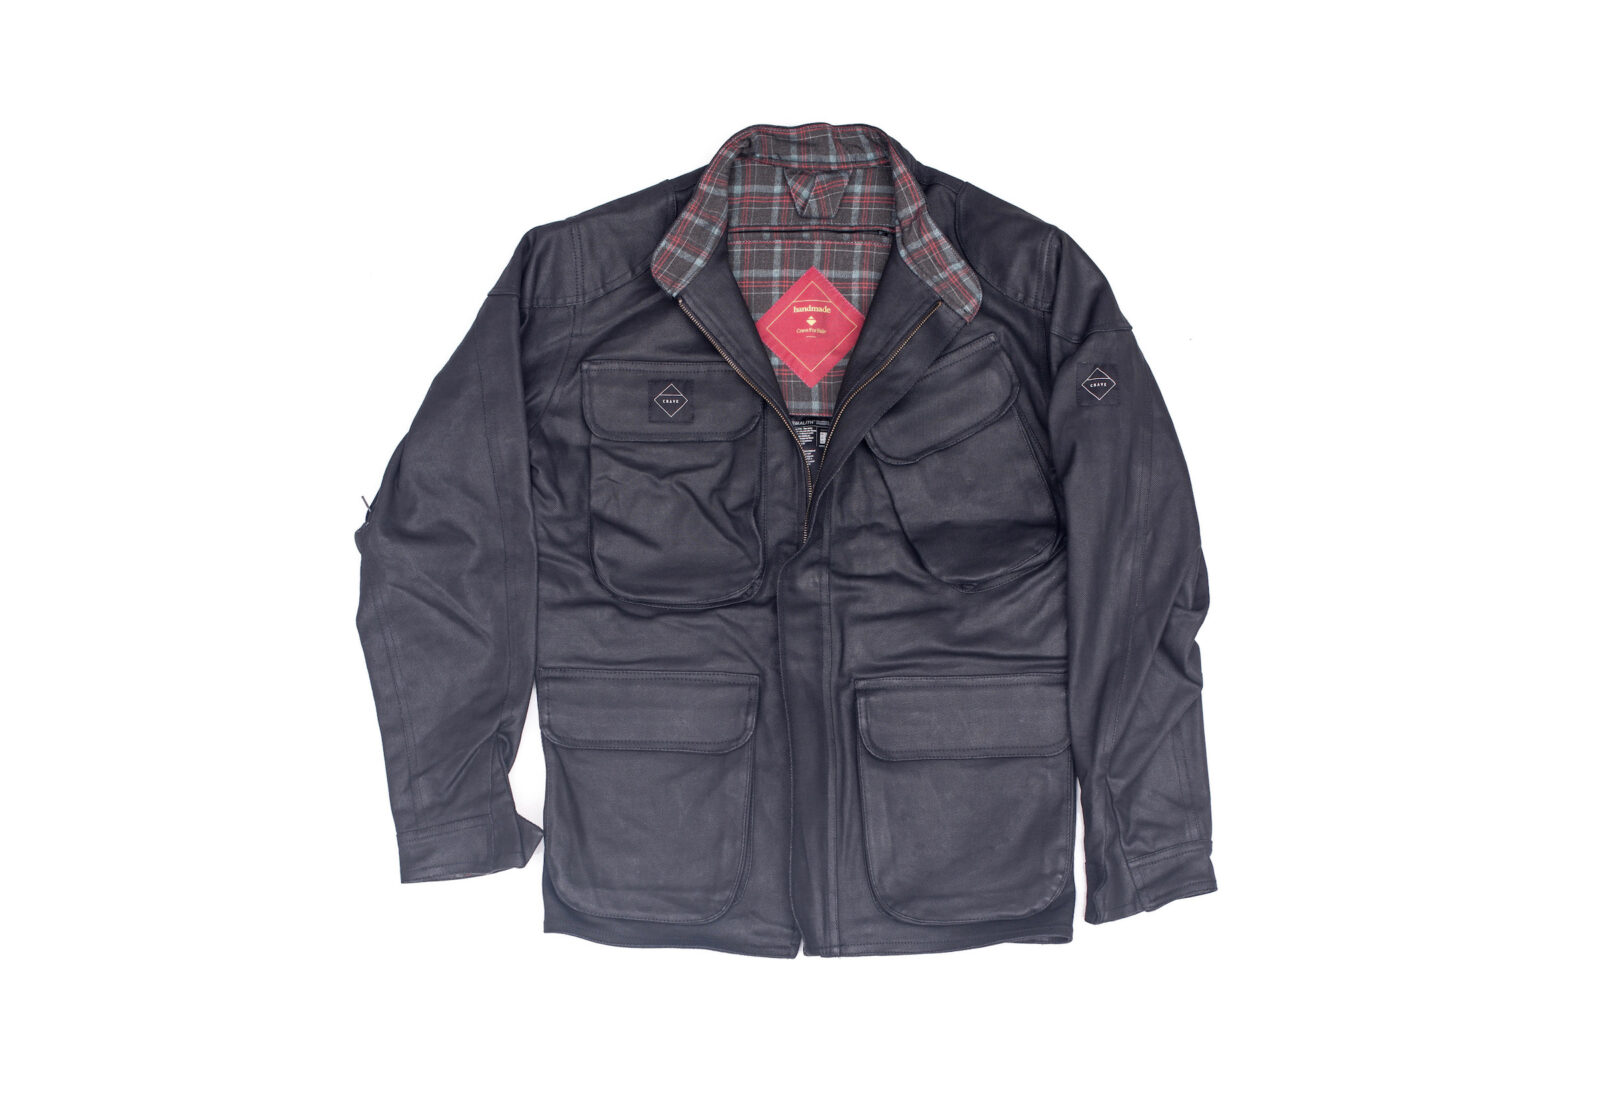 Crave Waxed Trophy Motorcycle Jacket 1600x1095 - Classic Style - Crave Waxed Trophy Motorcycle Jacket